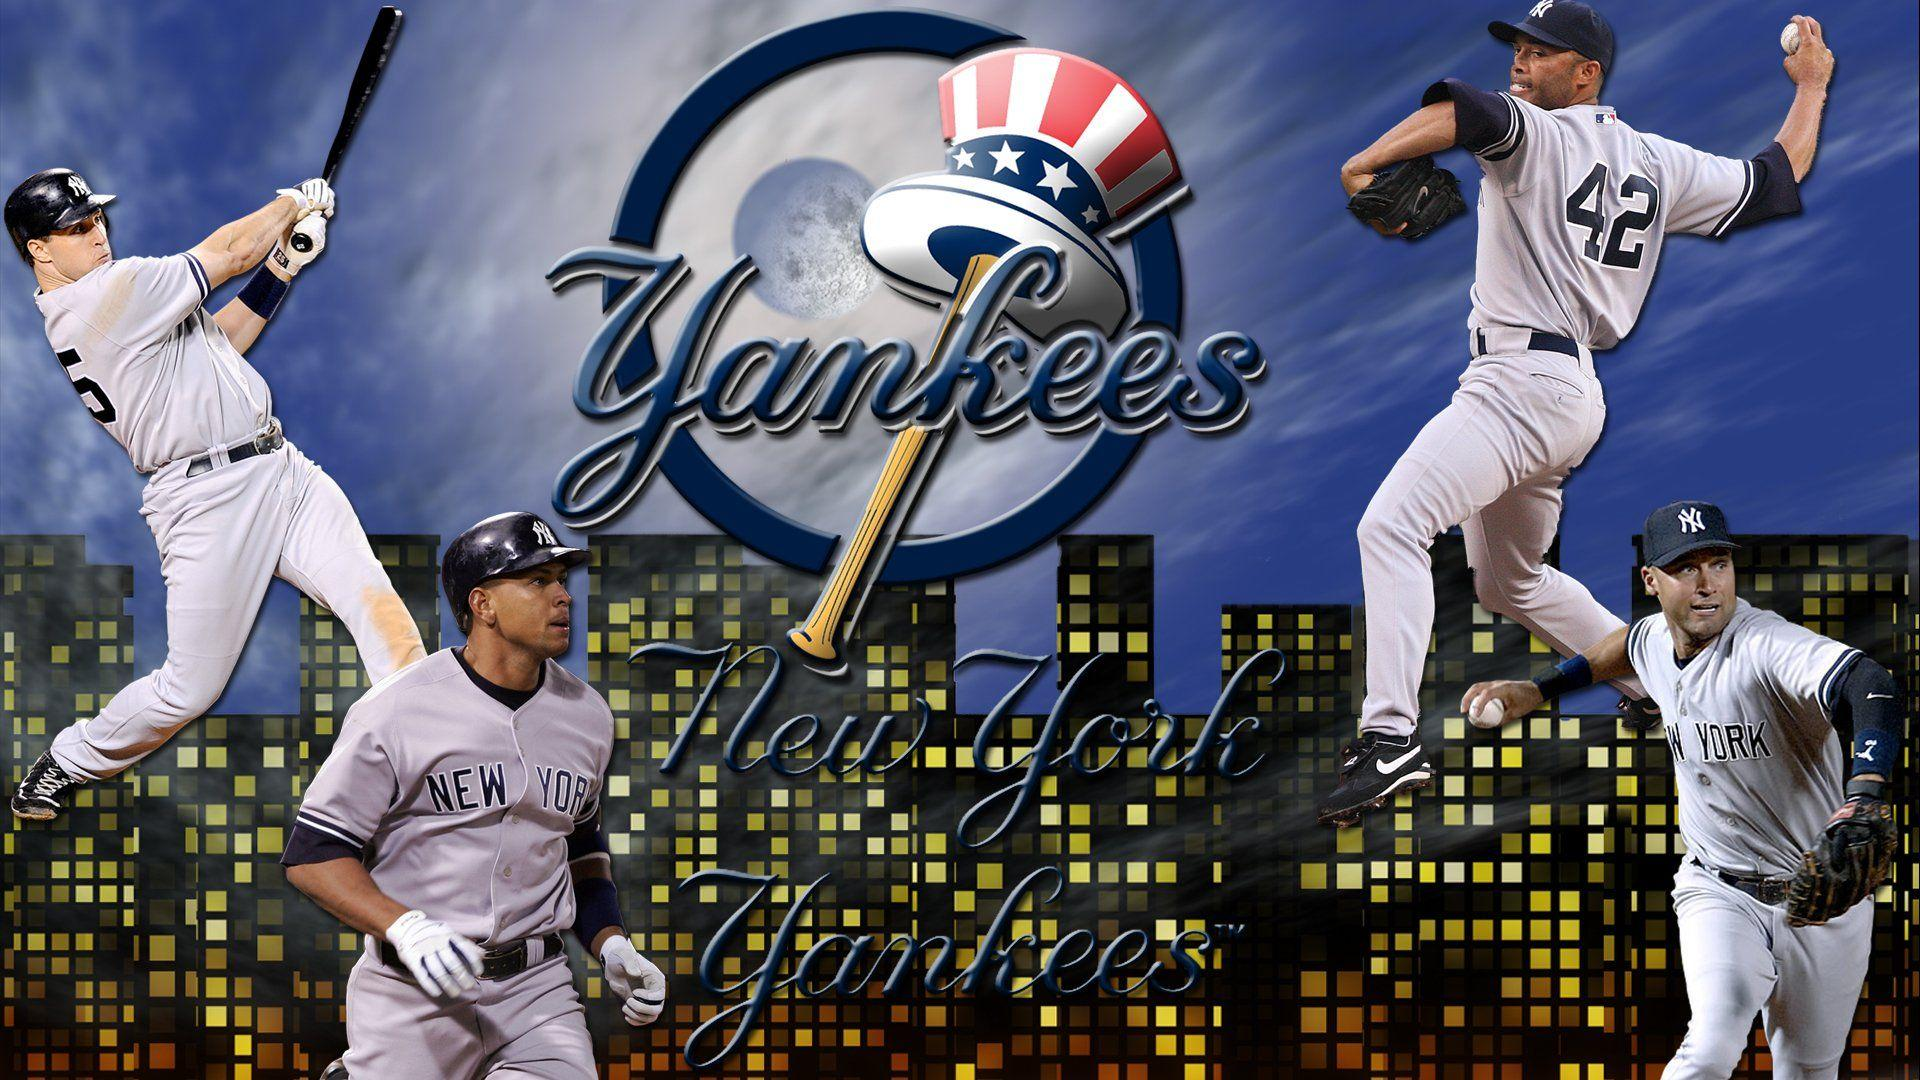 New York Yankees Full HD Wallpaper and Background Image .